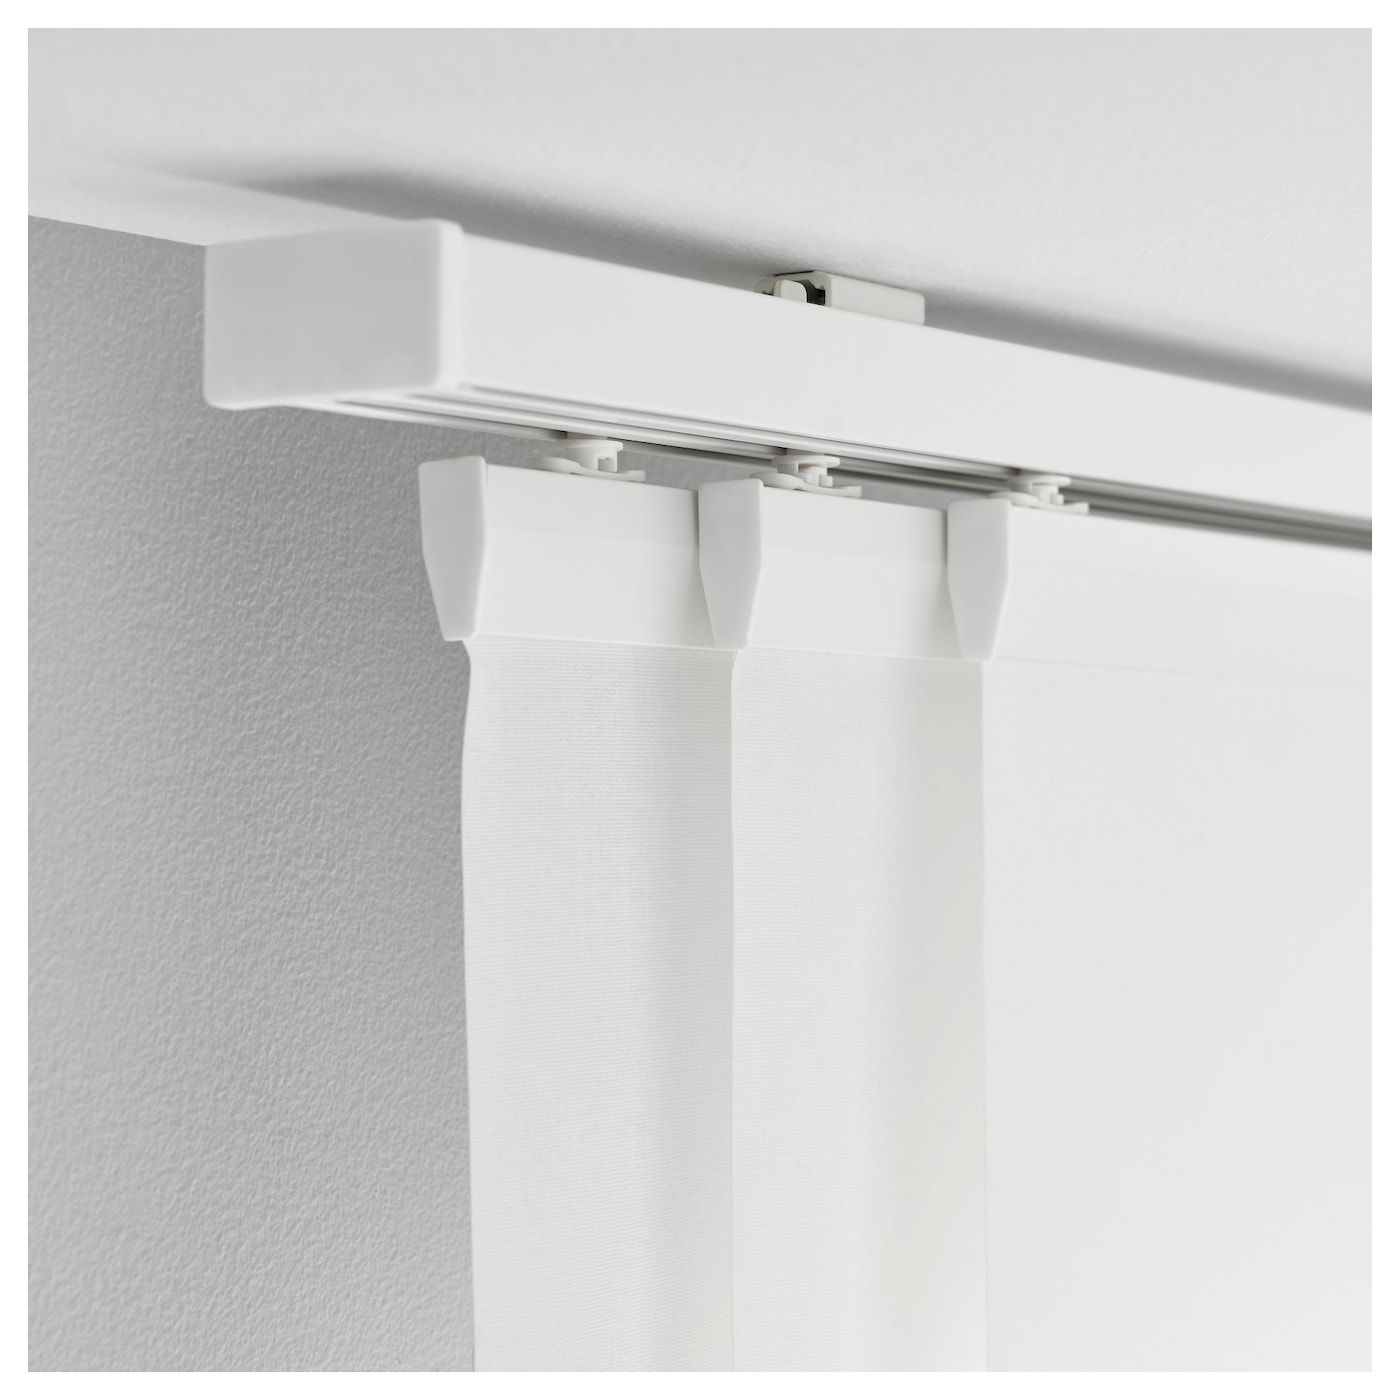 "23 ½ /""  New Ikea VIDGA Panel curtain holder white"